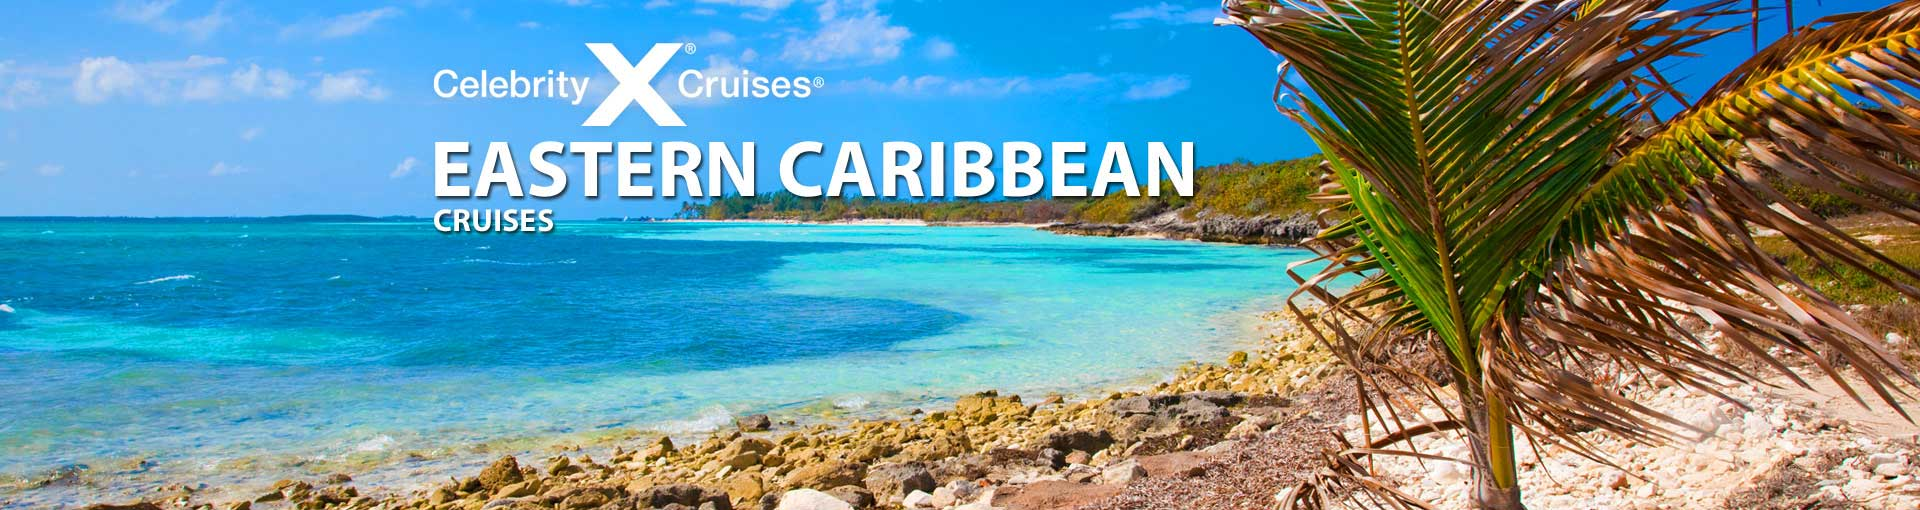 celebrity eastern caribbean cruises 2017 and 2018 eastern